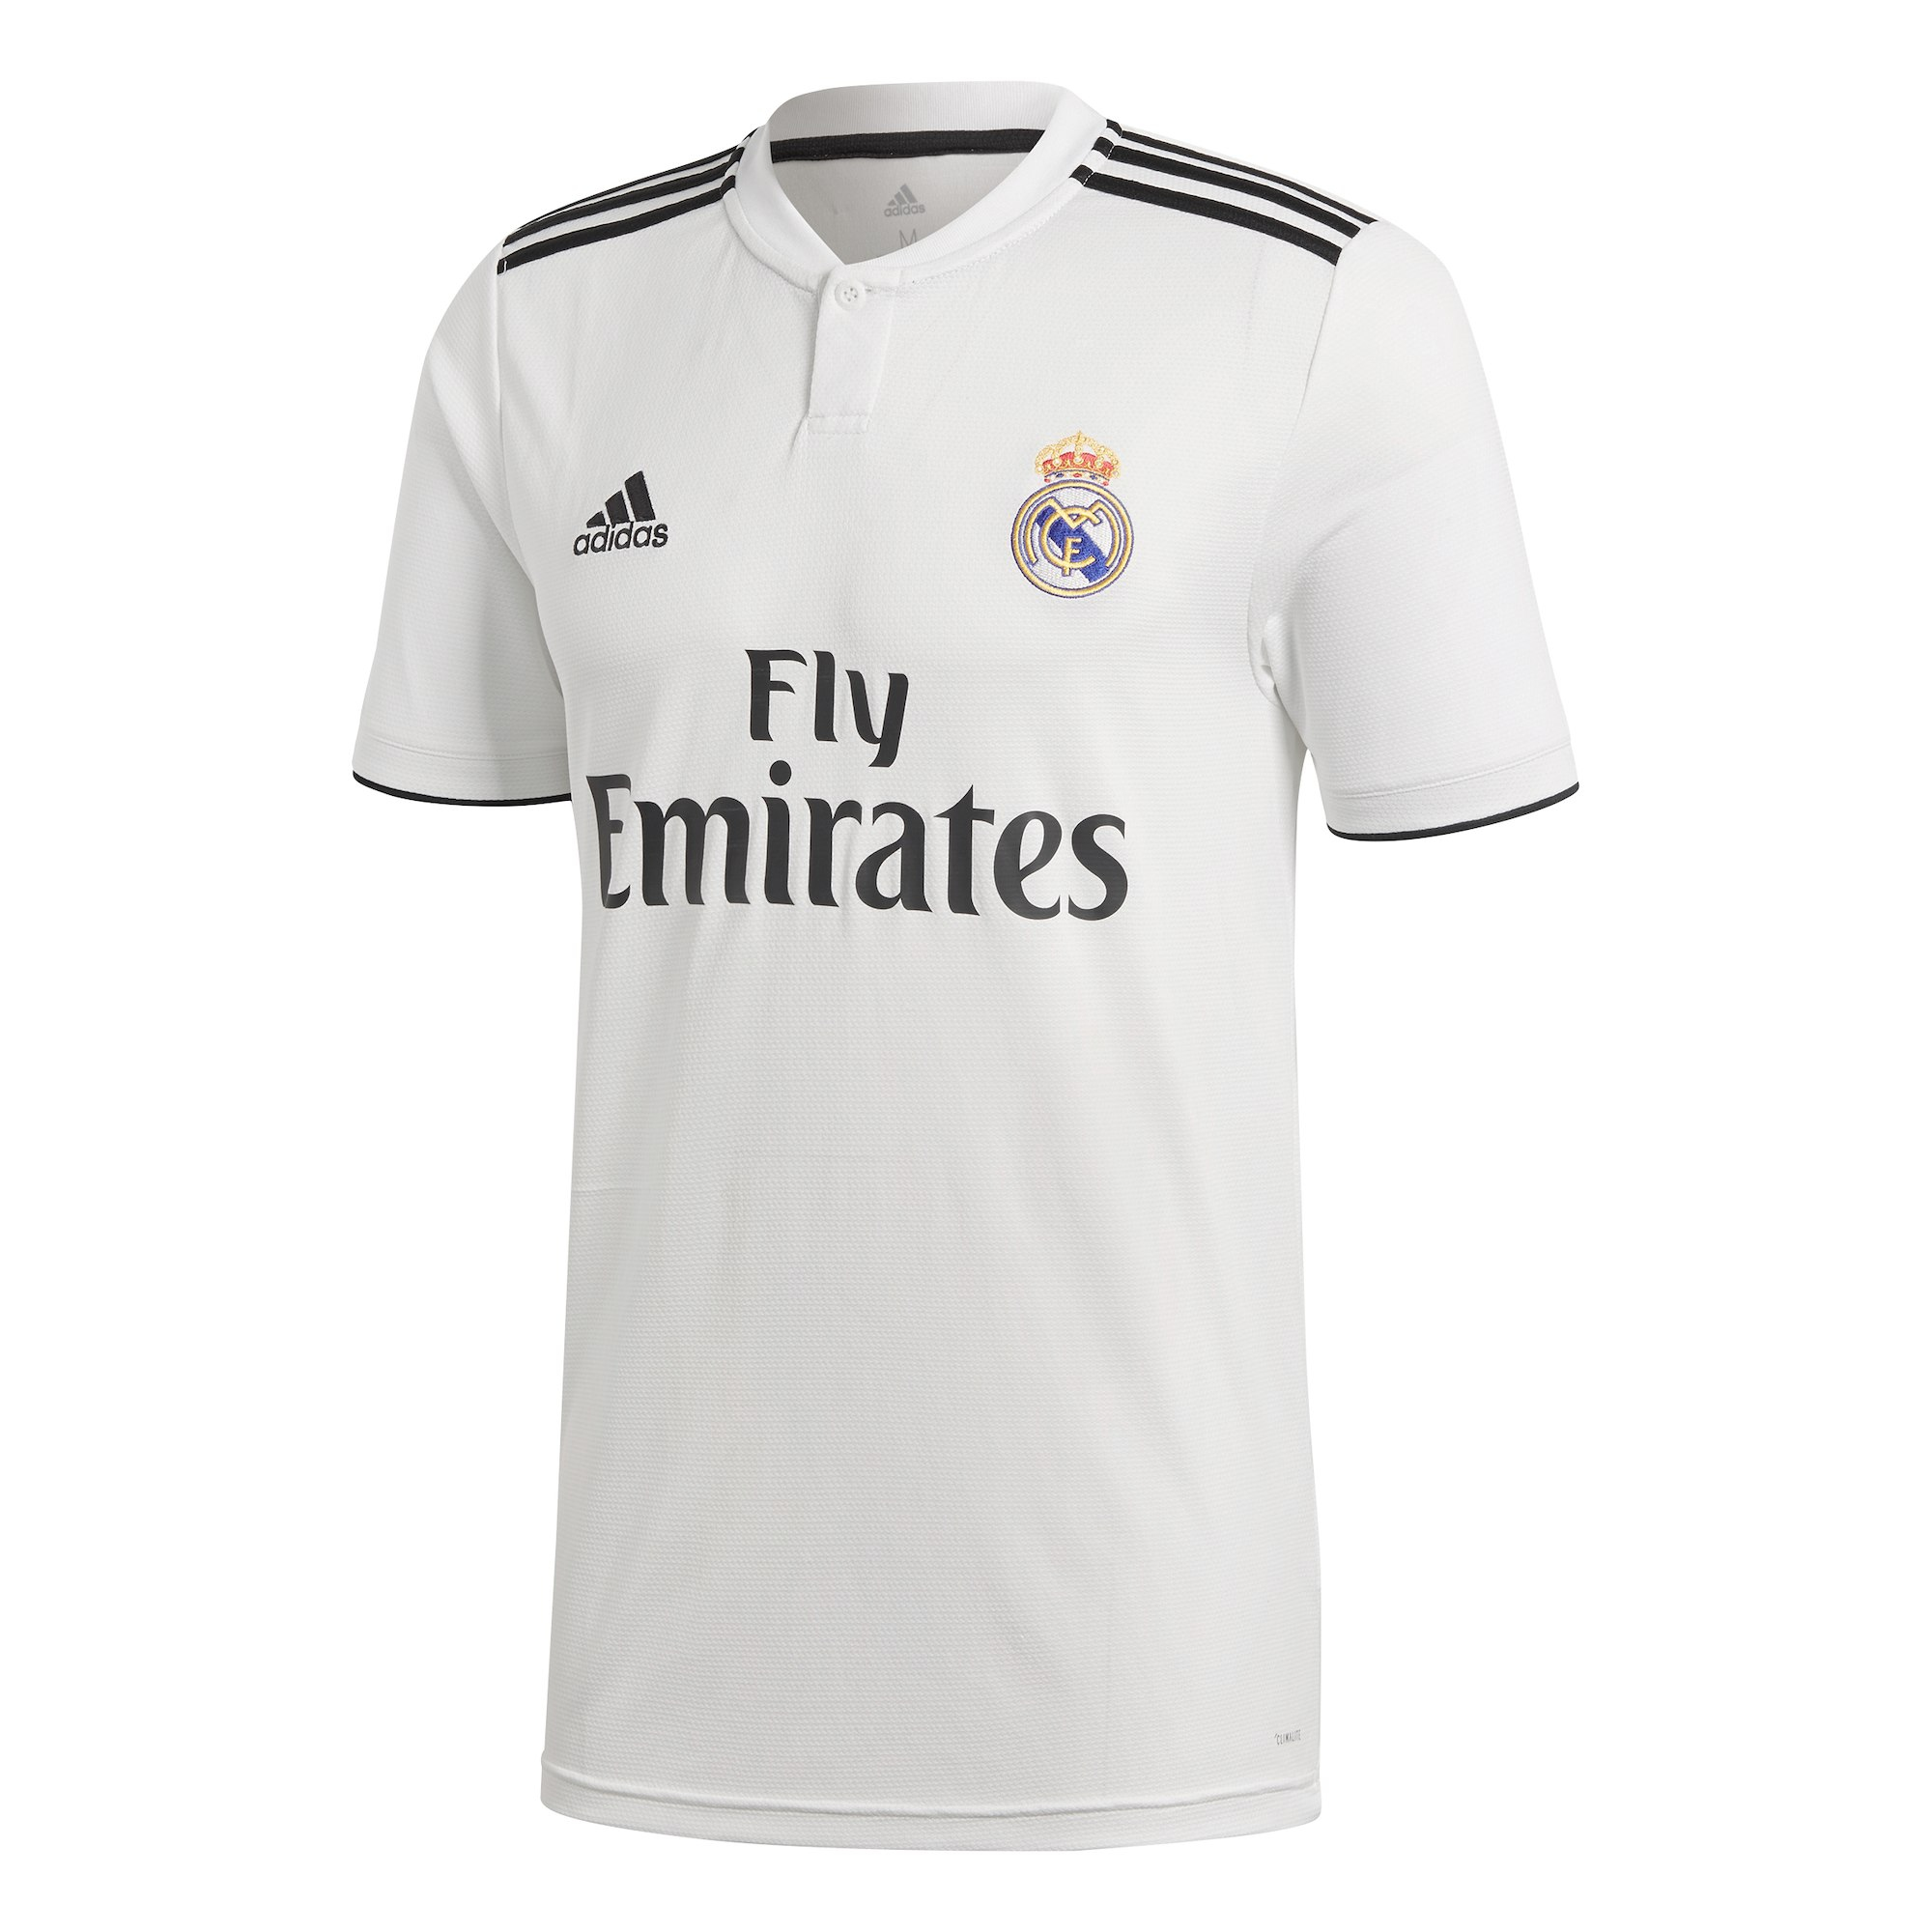 9274a49ce8f Jersey - Real Madrid Home Jersey 2018 2019 Football Jersey Online Malaysia